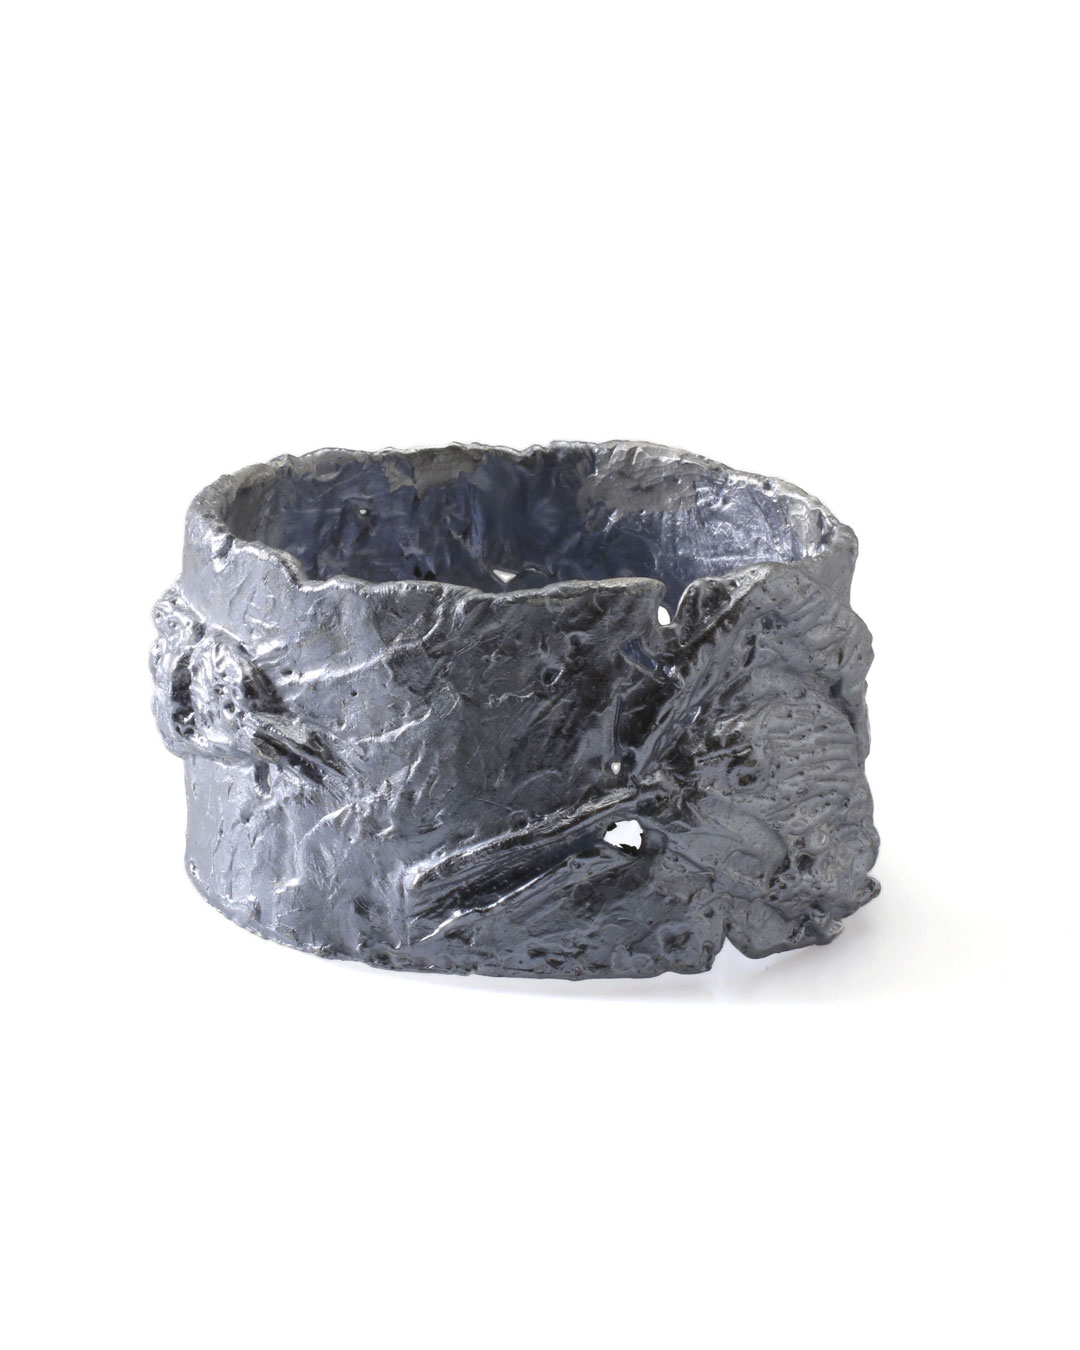 Juliane Brandes, untitled, 2013, bracelet; aluminium-manganese, 80 x 45 mm, €1100